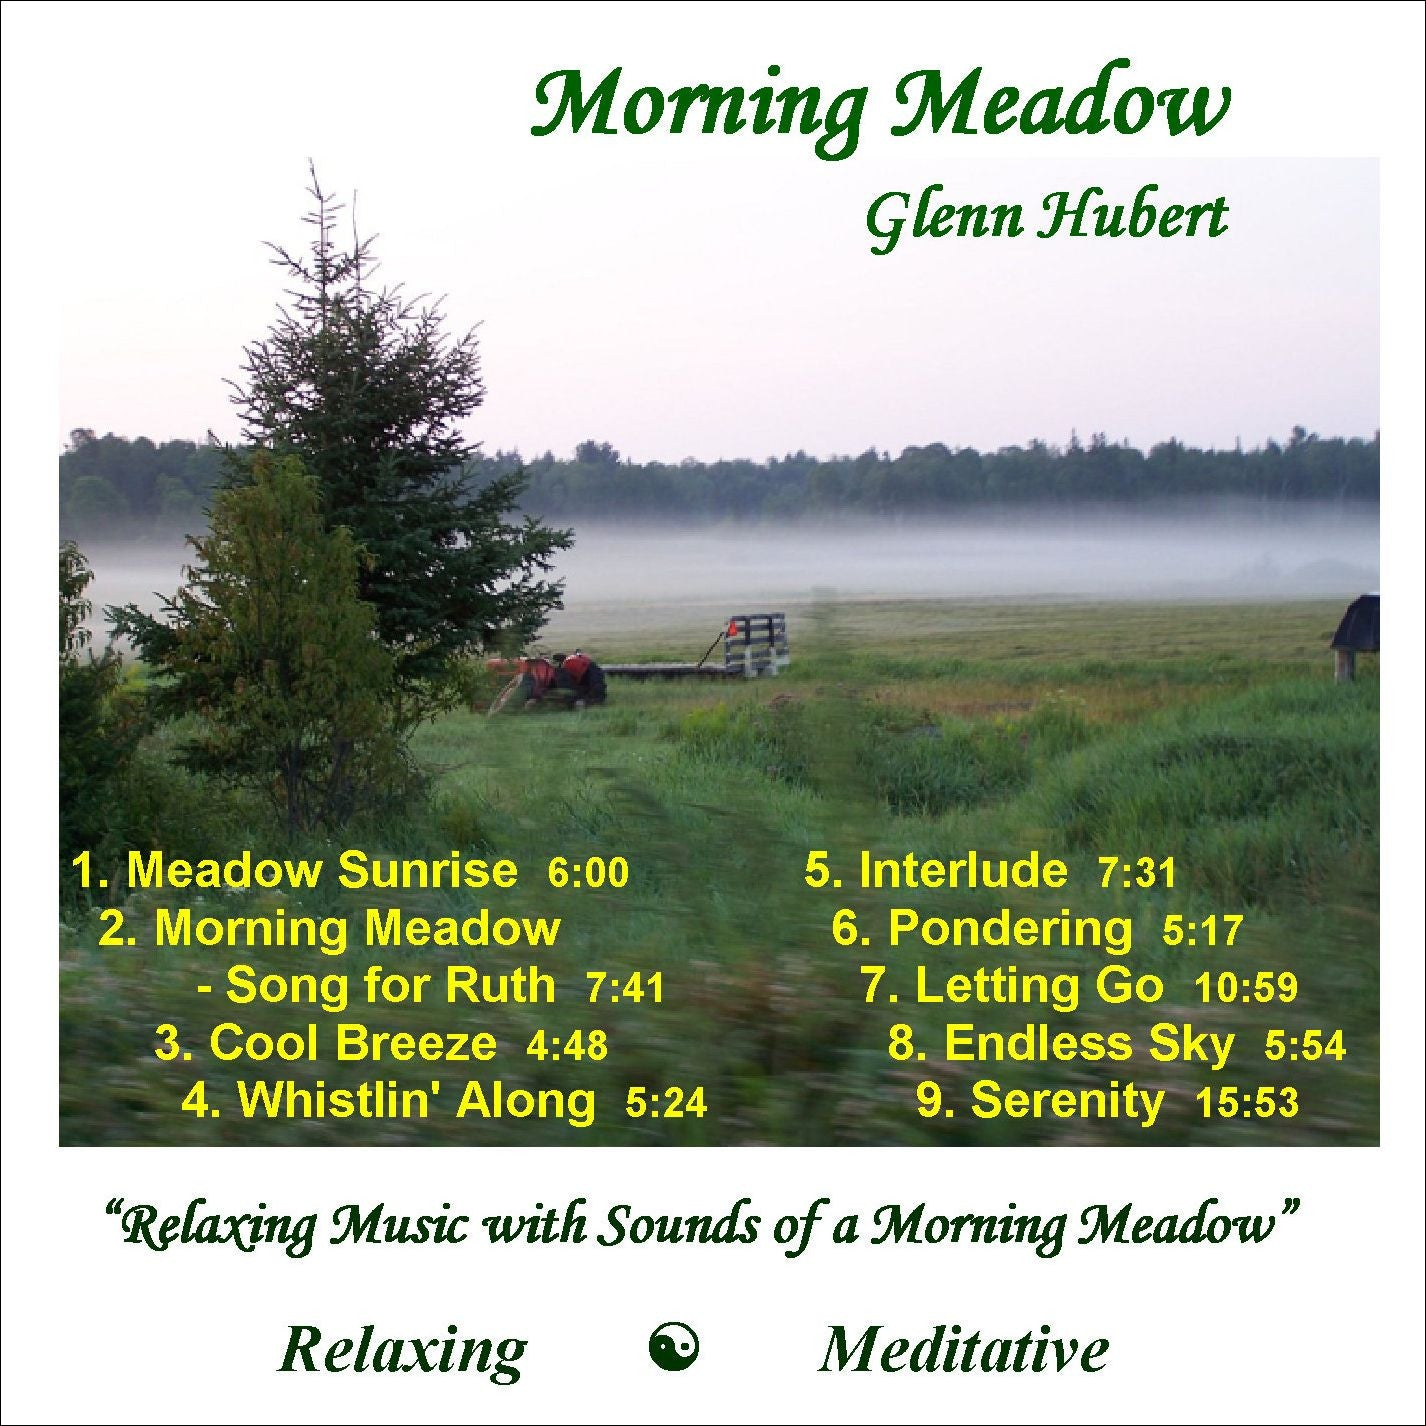 Morning Meadown Glenn Hubert CD front